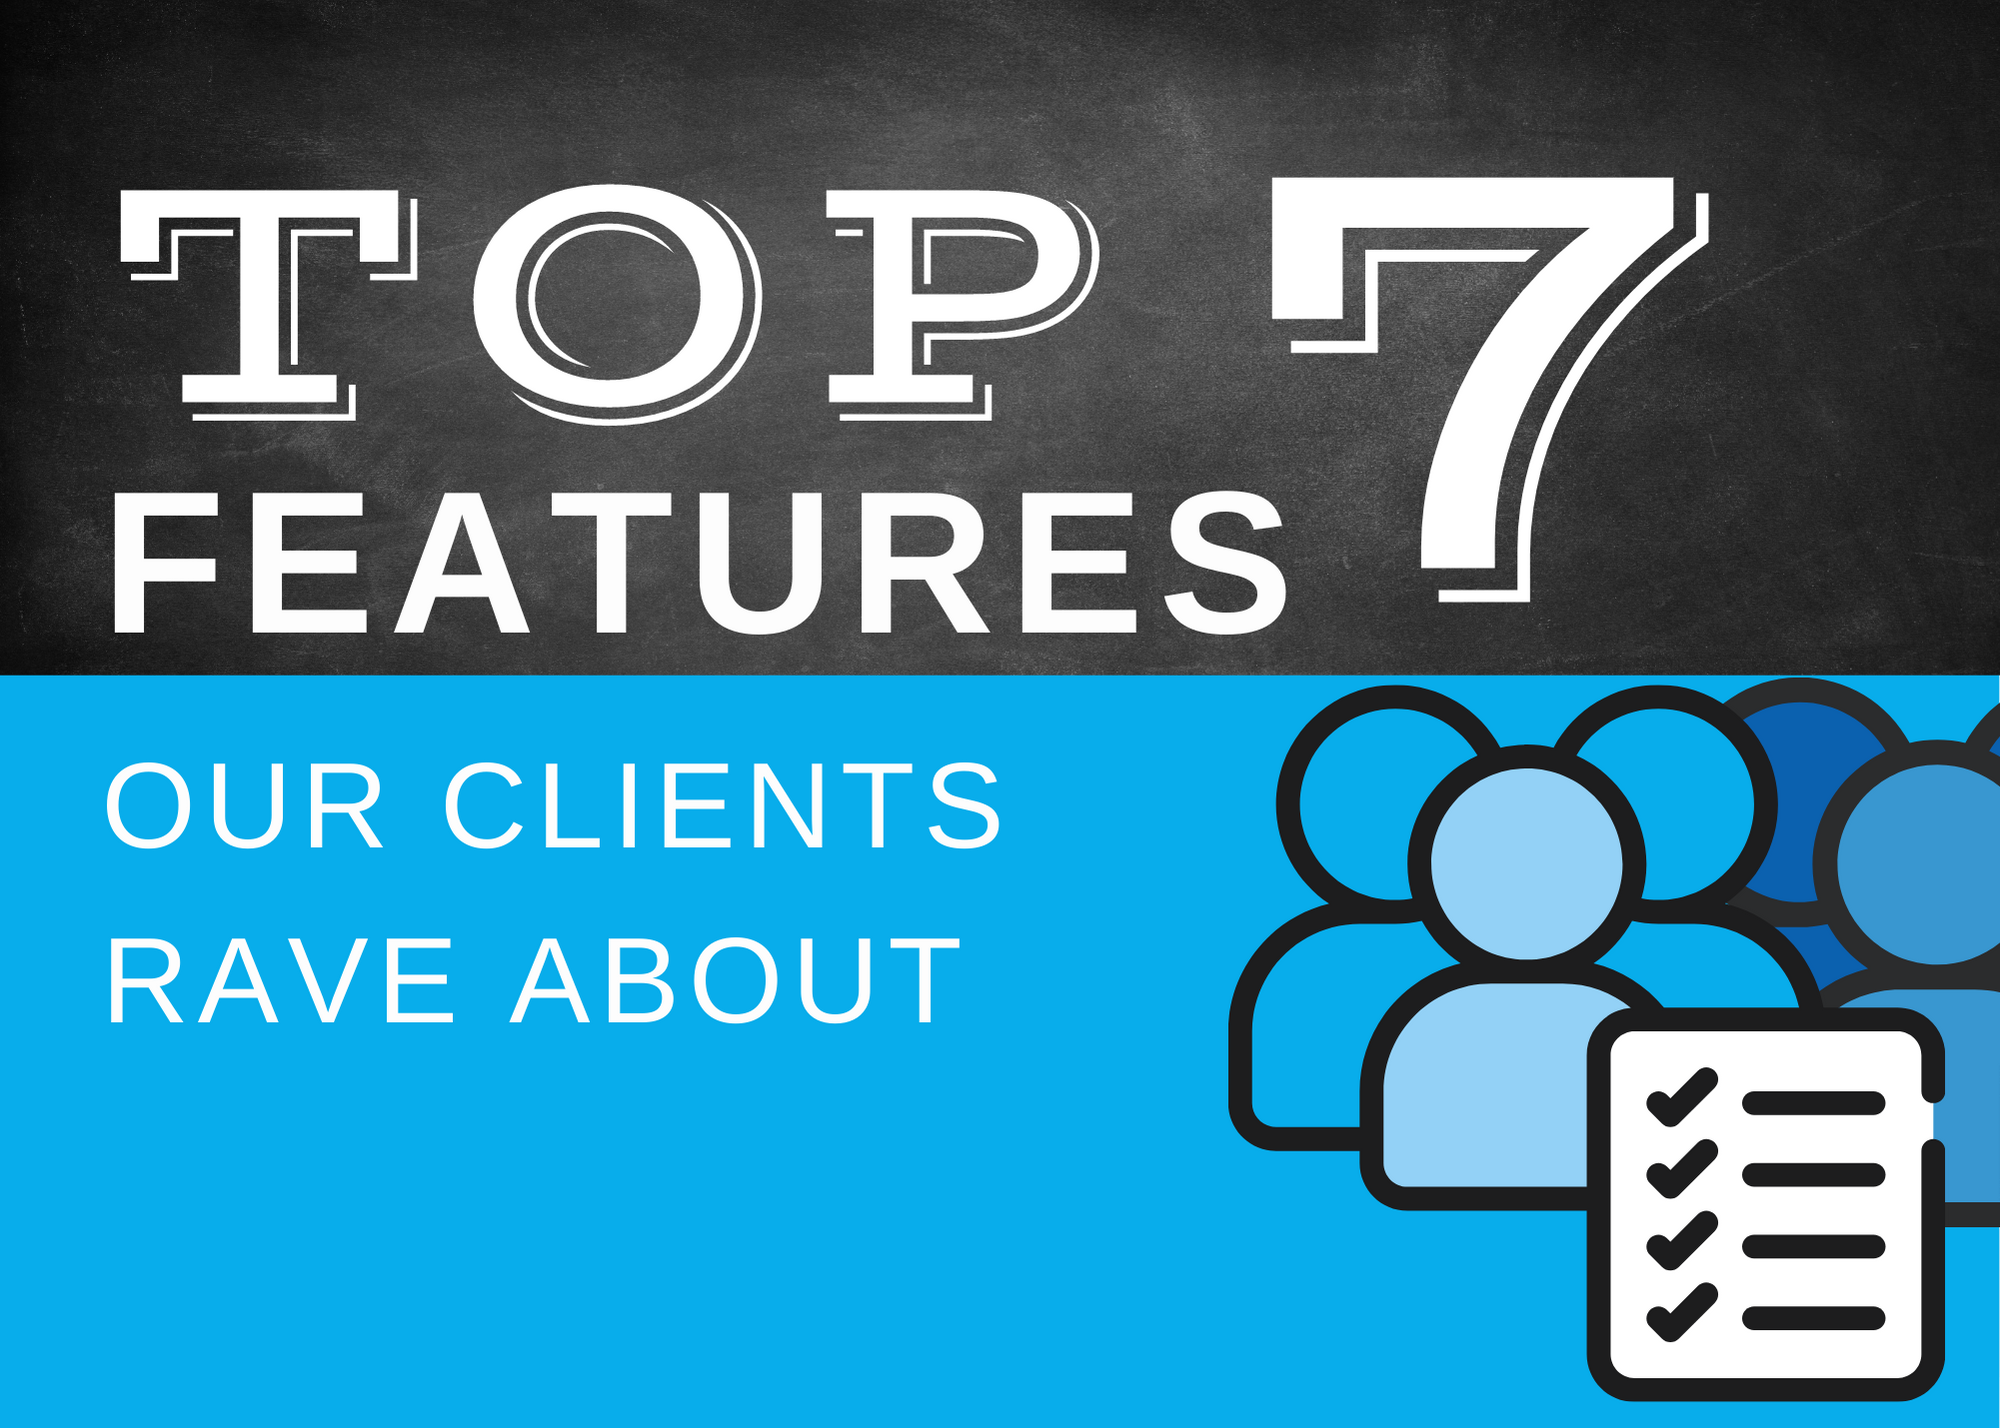 The top 7 features our clients rave about